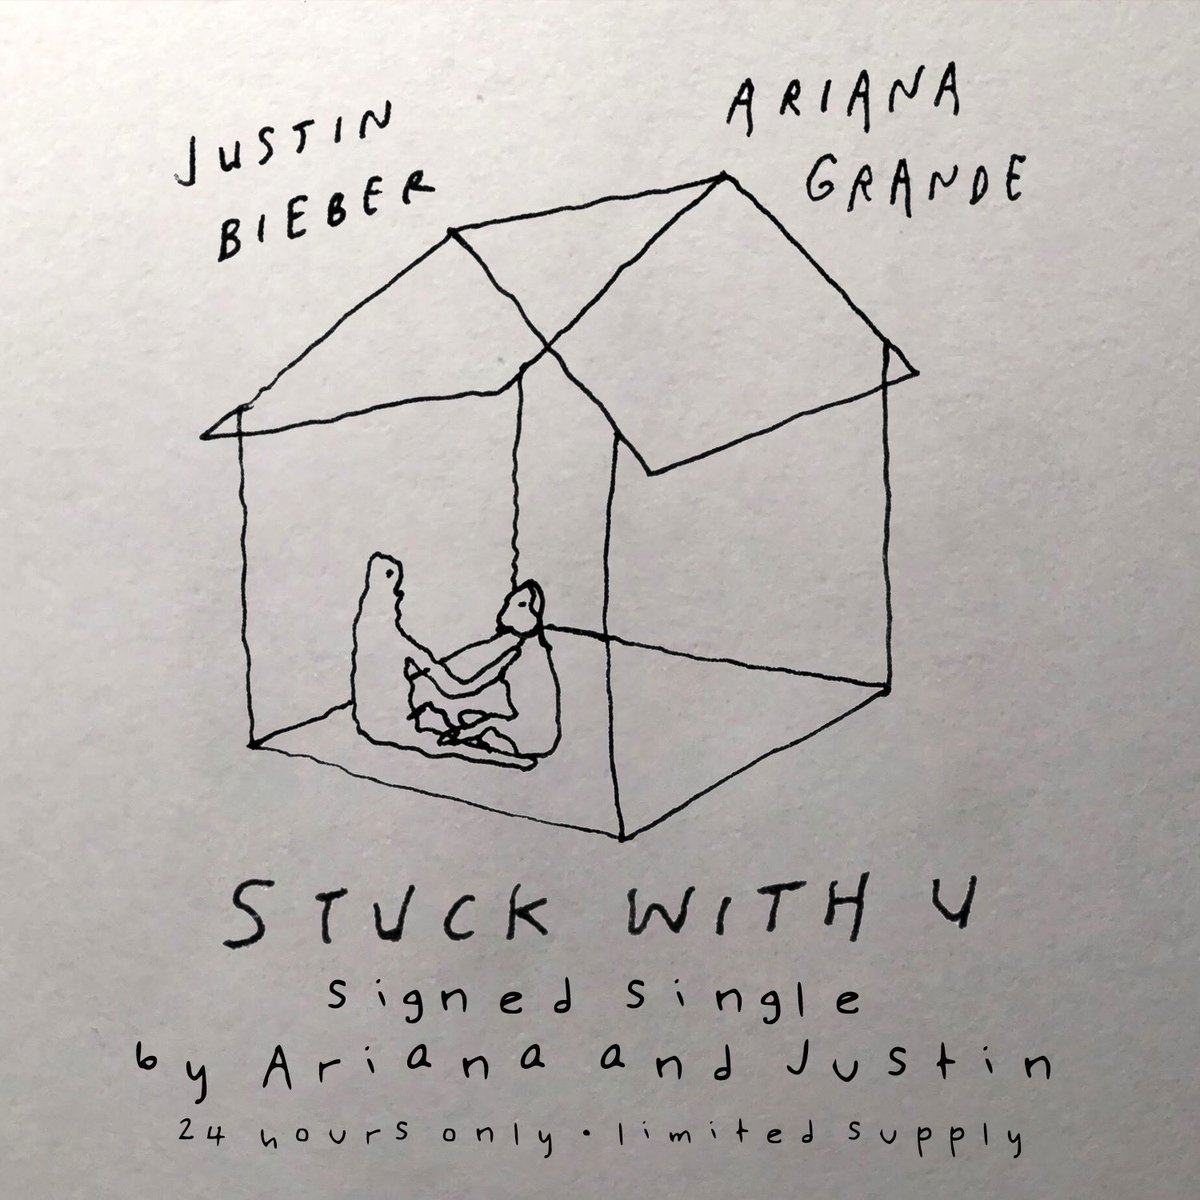 Limited number of #StuckwithU CDs signed by me and @arianagrande for 24 hours starting now. All proceeds to @1strcf https://t.co/YS5pmiEtOa https://t.co/y7ZG9iTIbb